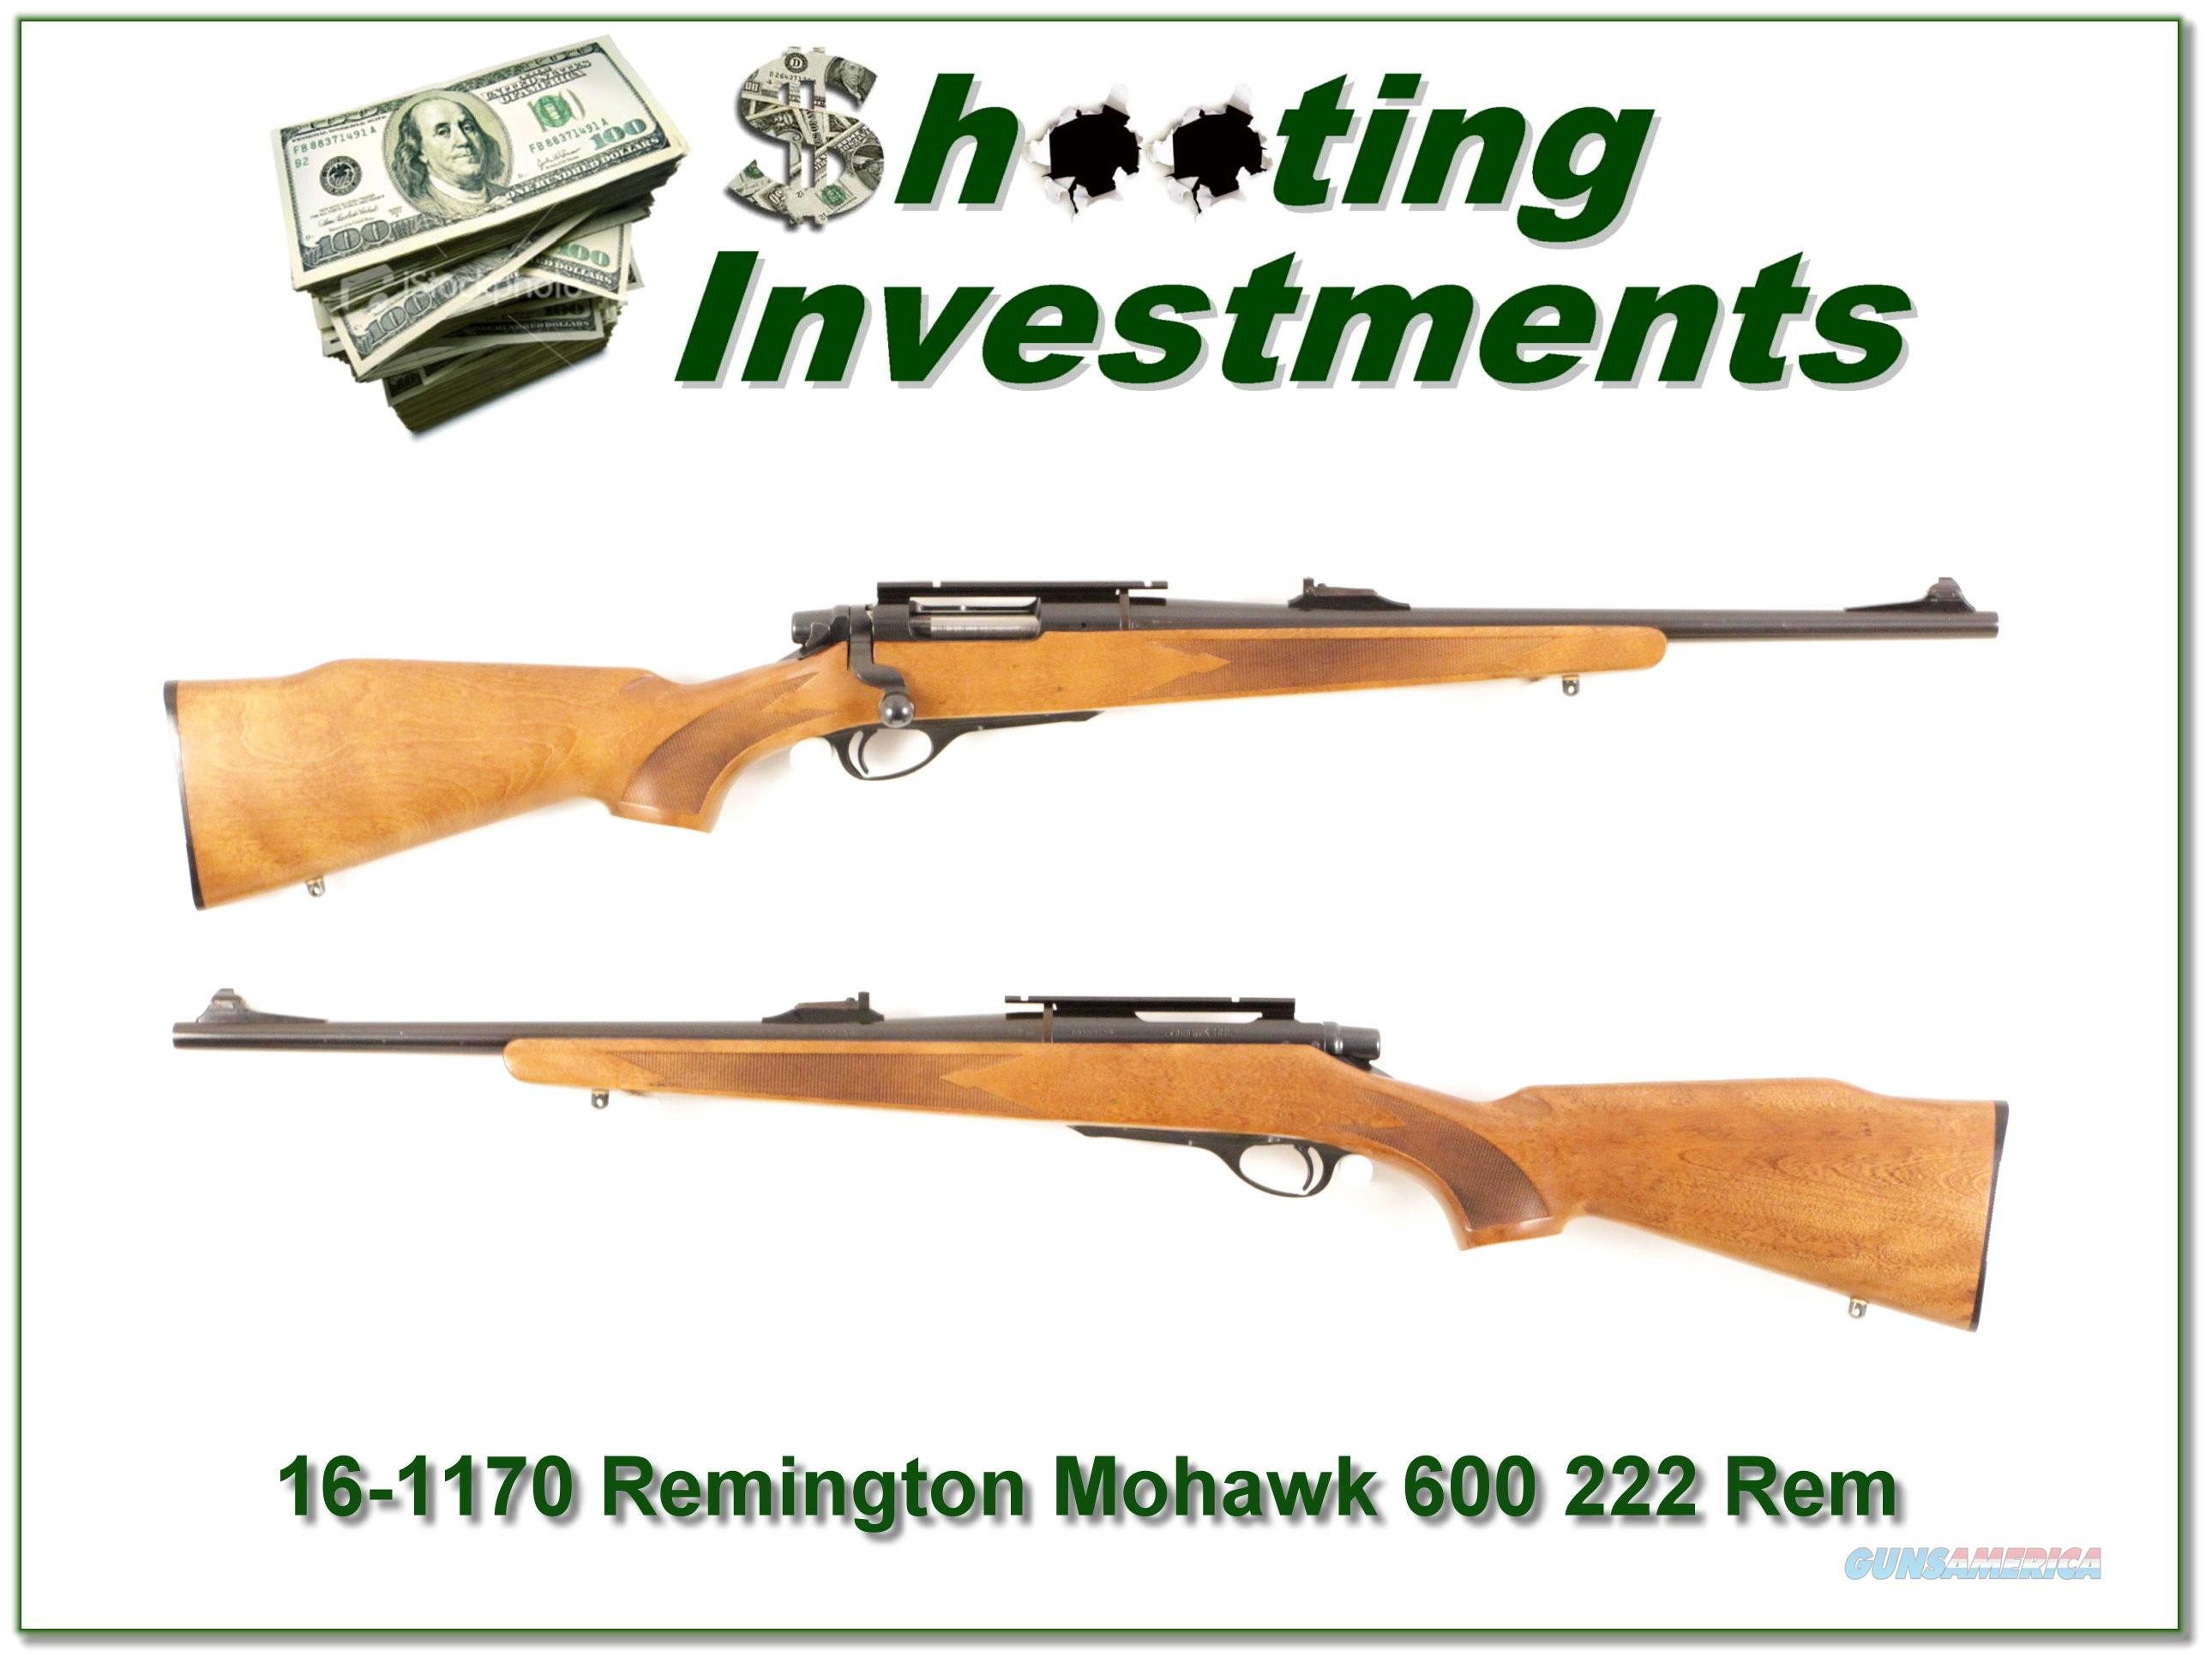 Remington Model 600 Mohawk 222 Rem Collector!!  Guns > Rifles > Remington Rifles - Modern > Bolt Action Non-Model 700 > Sporting